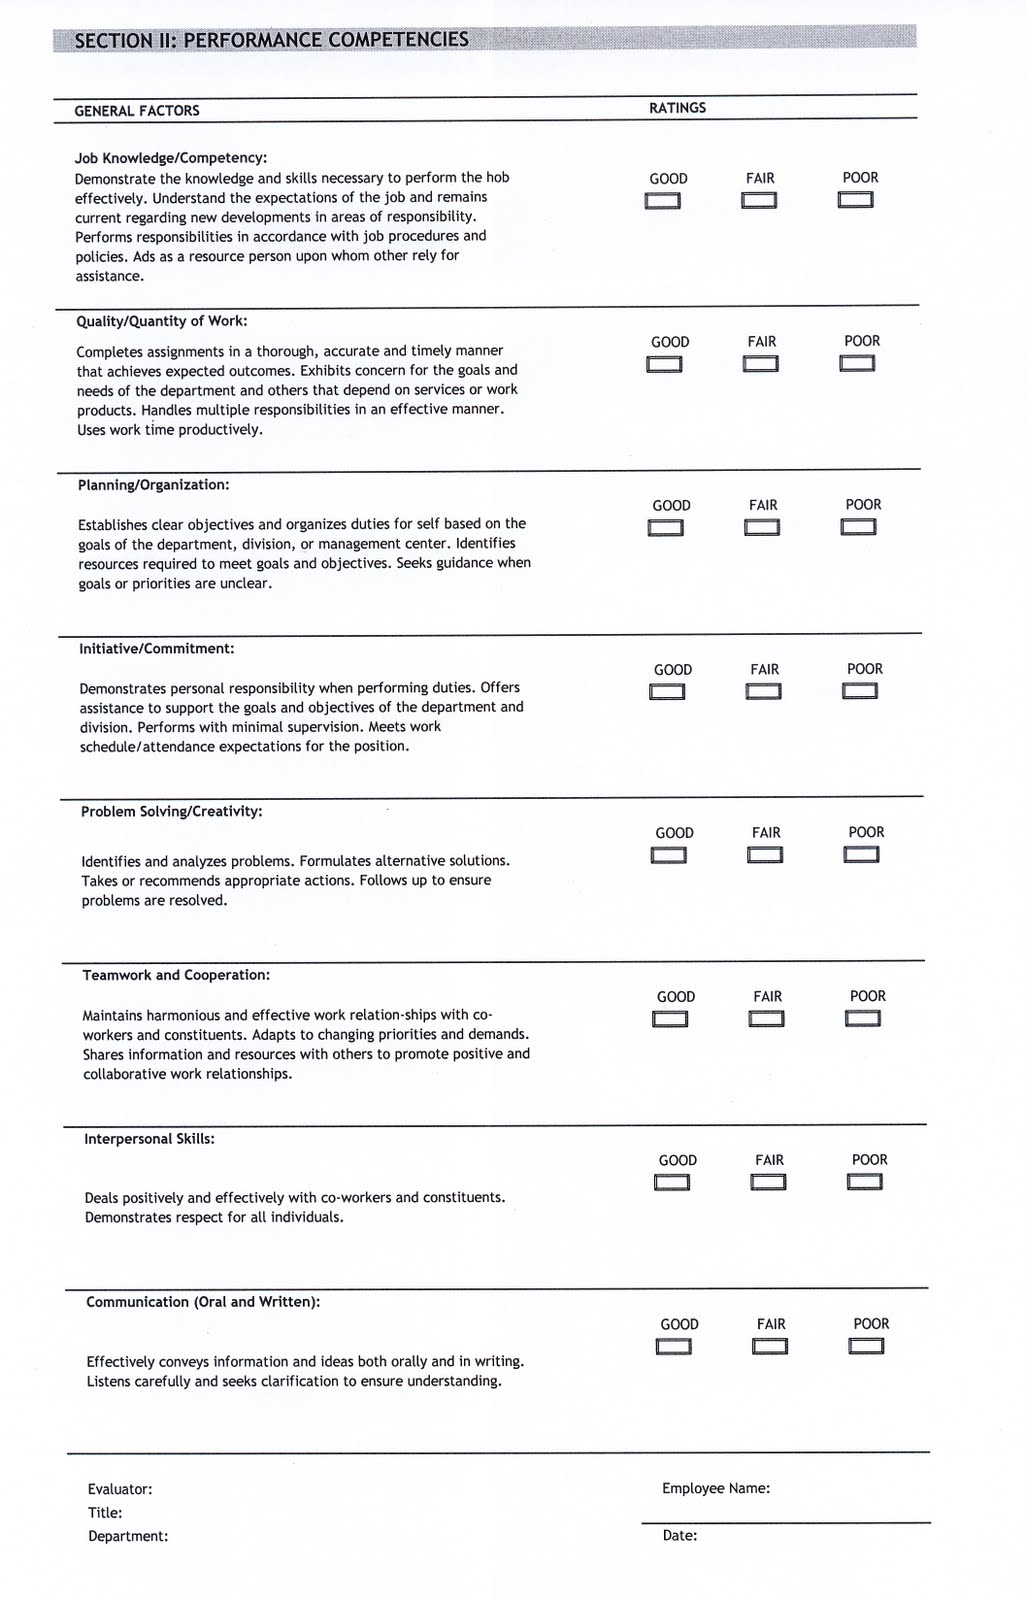 performance appraisal form template